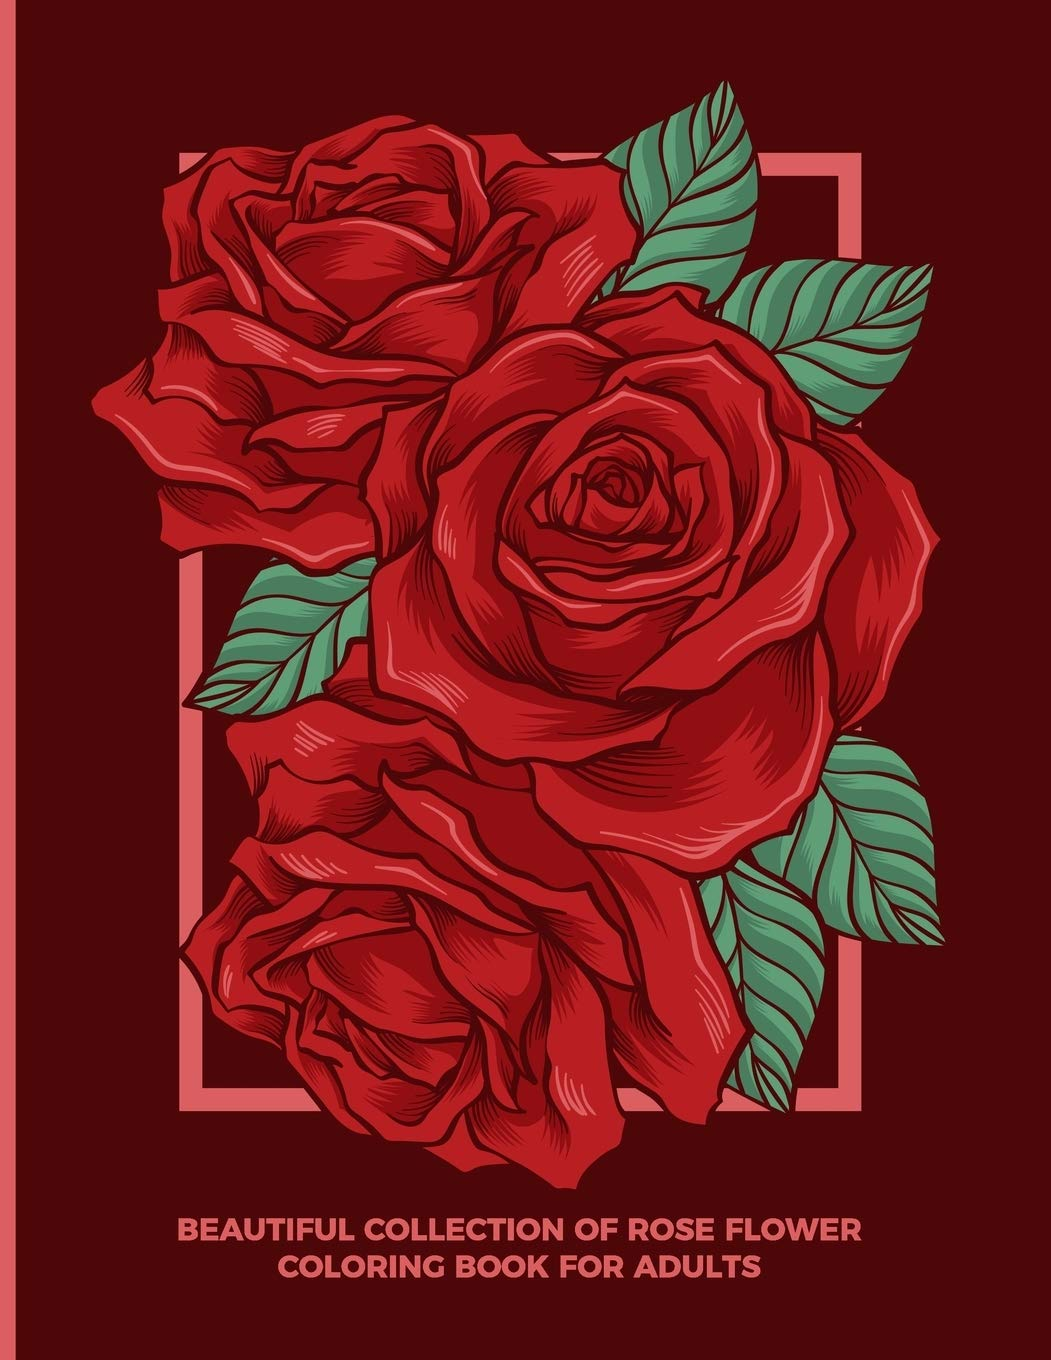 Amazon Com Beautiful Collection Of Rose Flower Coloring Book For Adults Fun Easy And Relaxing Pages Relaxation And De Stress Relief Activity Sheets Images Creativity Reduce Stress Color Therapy 9781072279341 Designs